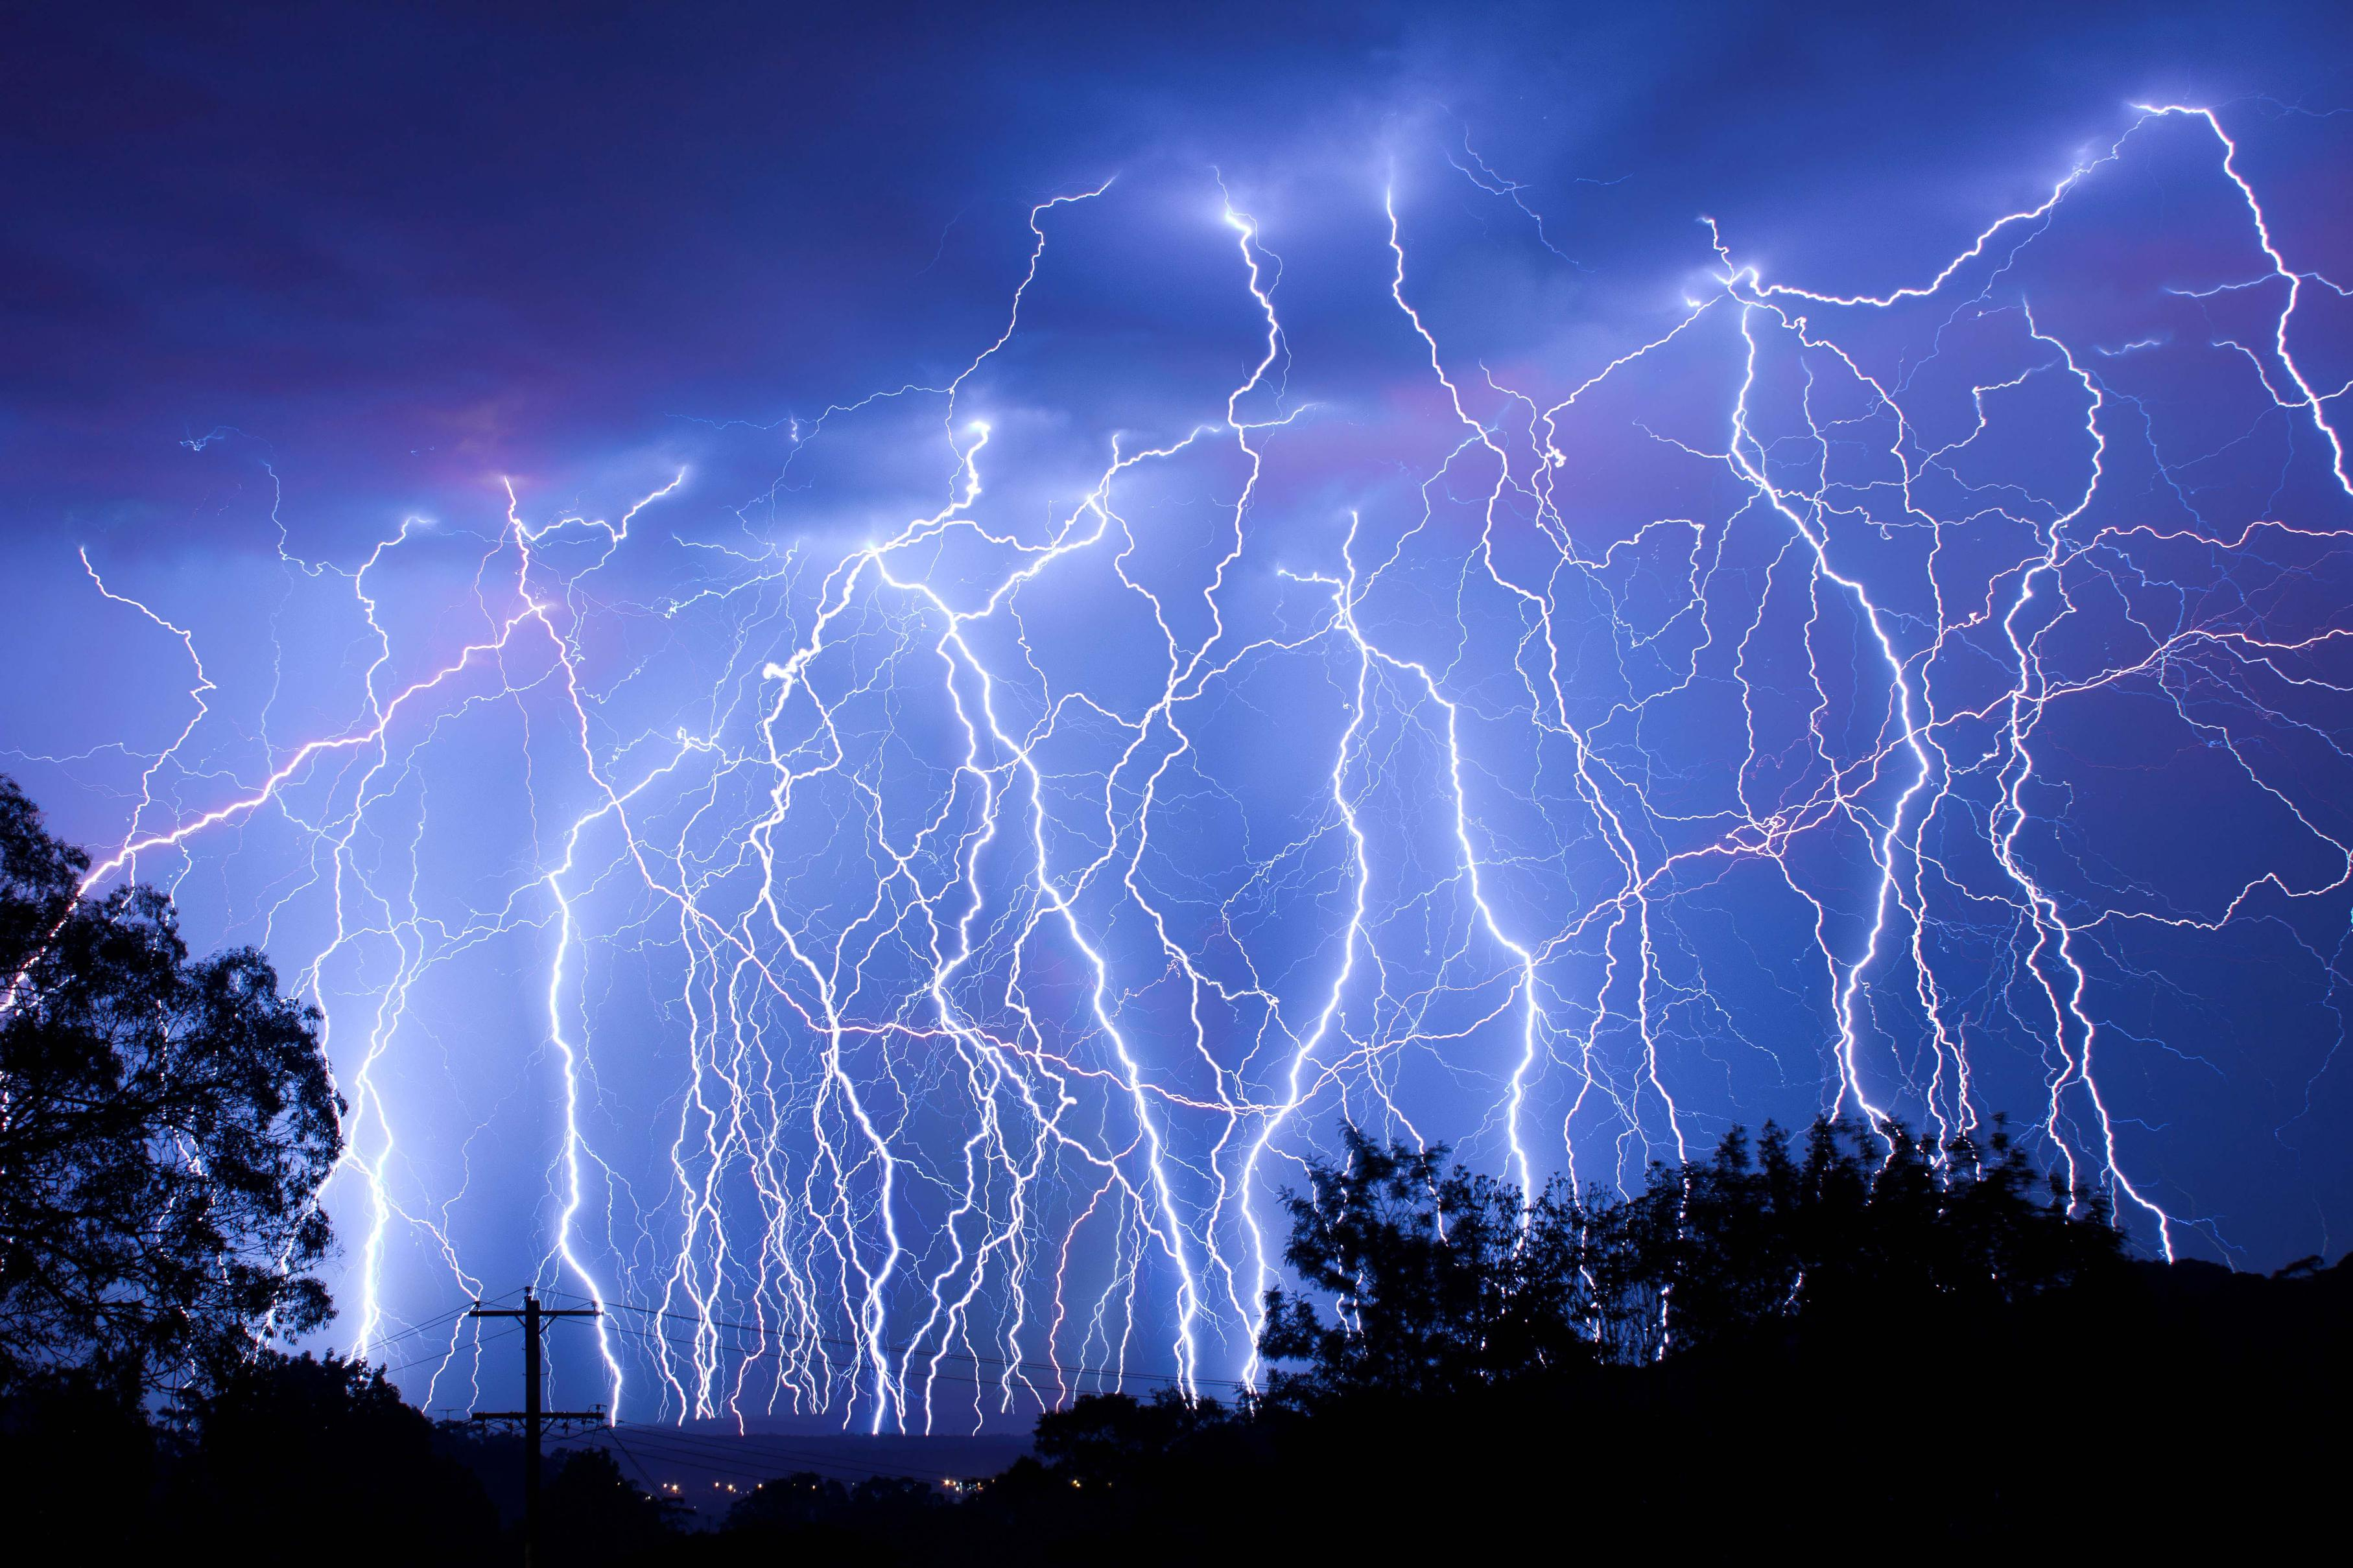 Lightning wallpapers hd pixelstalk lightning wallpapers hd voltagebd Image collections